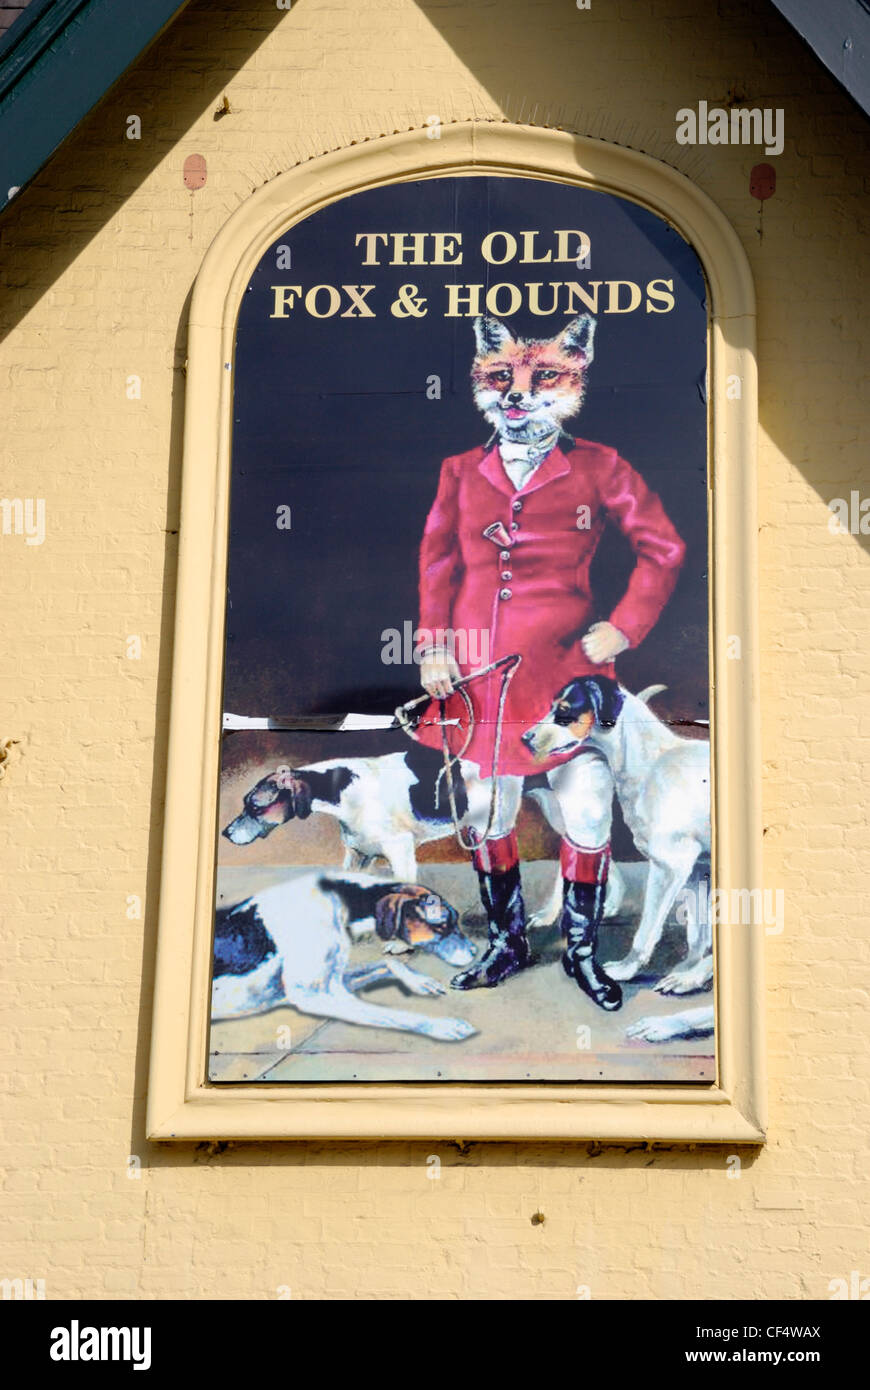 A pub sign on a wall outside The Old Fox and Hounds pub in Croydon. Stock Photo